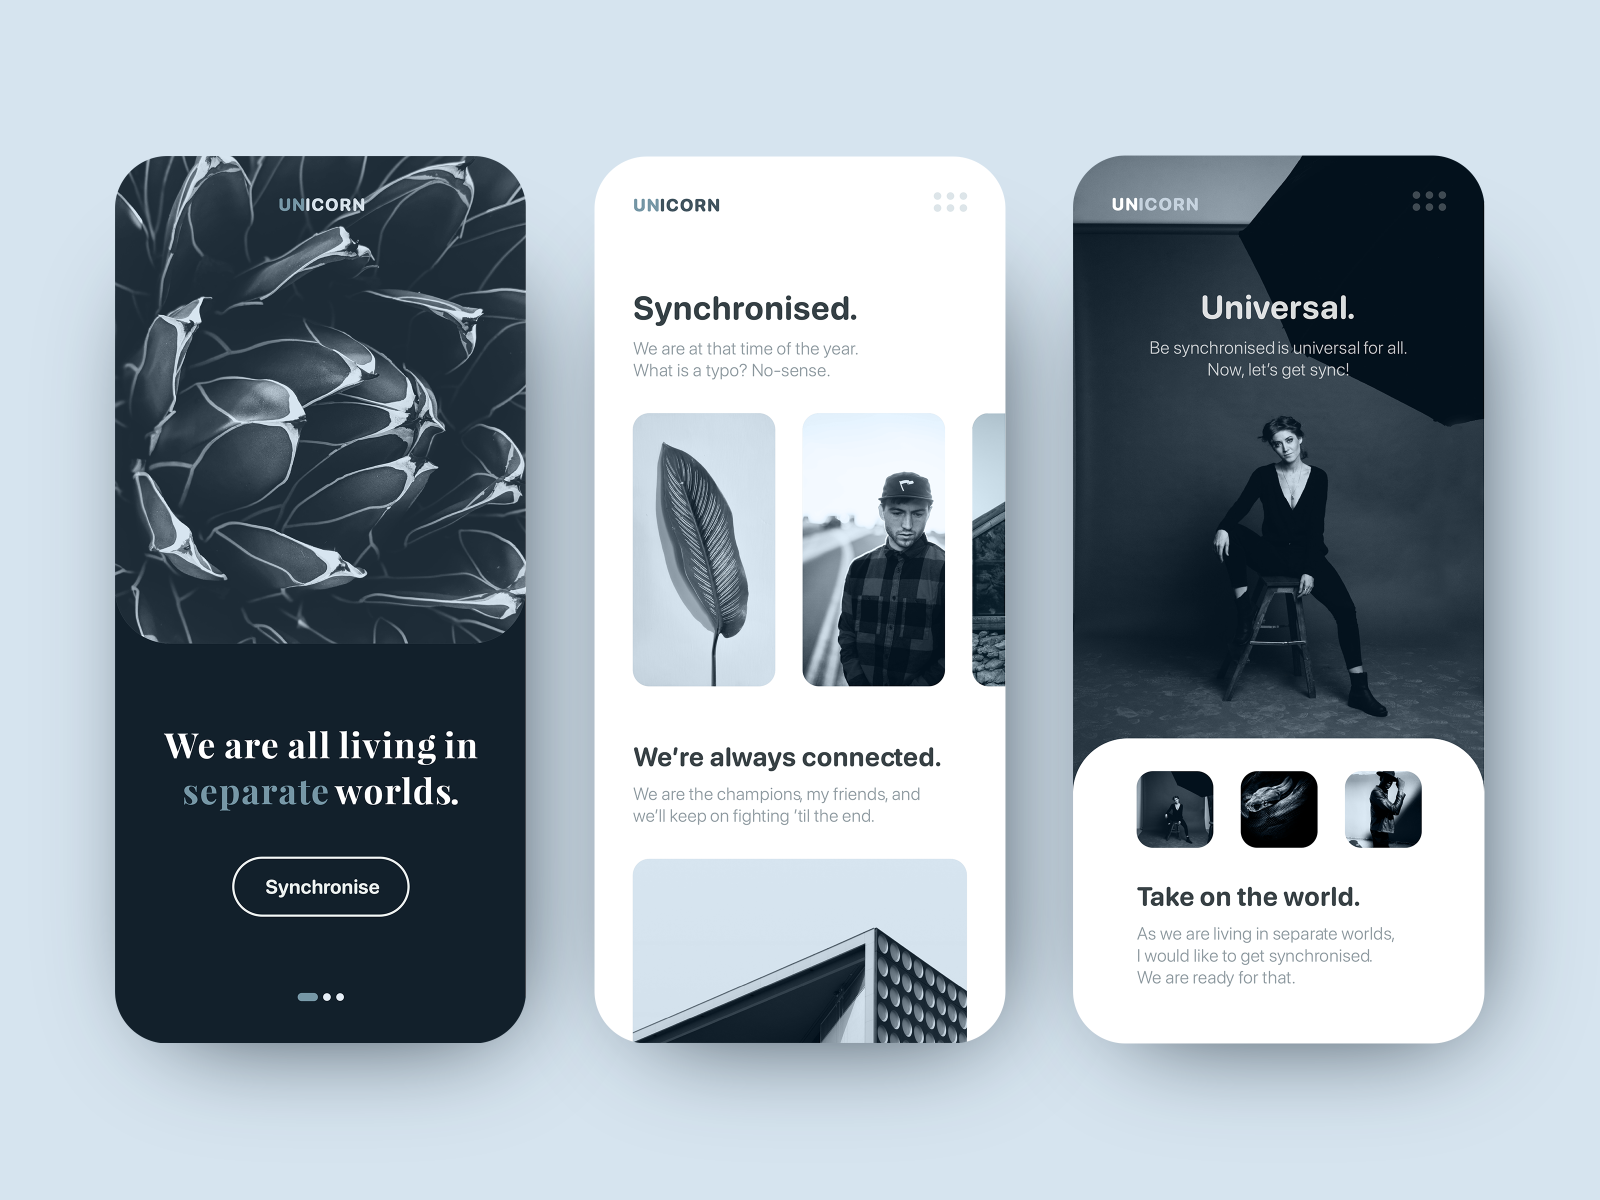 Not Grayscale By Julien Brion In 2020 Mobile App Design Inspiration App Design Mobile Design Inspiration